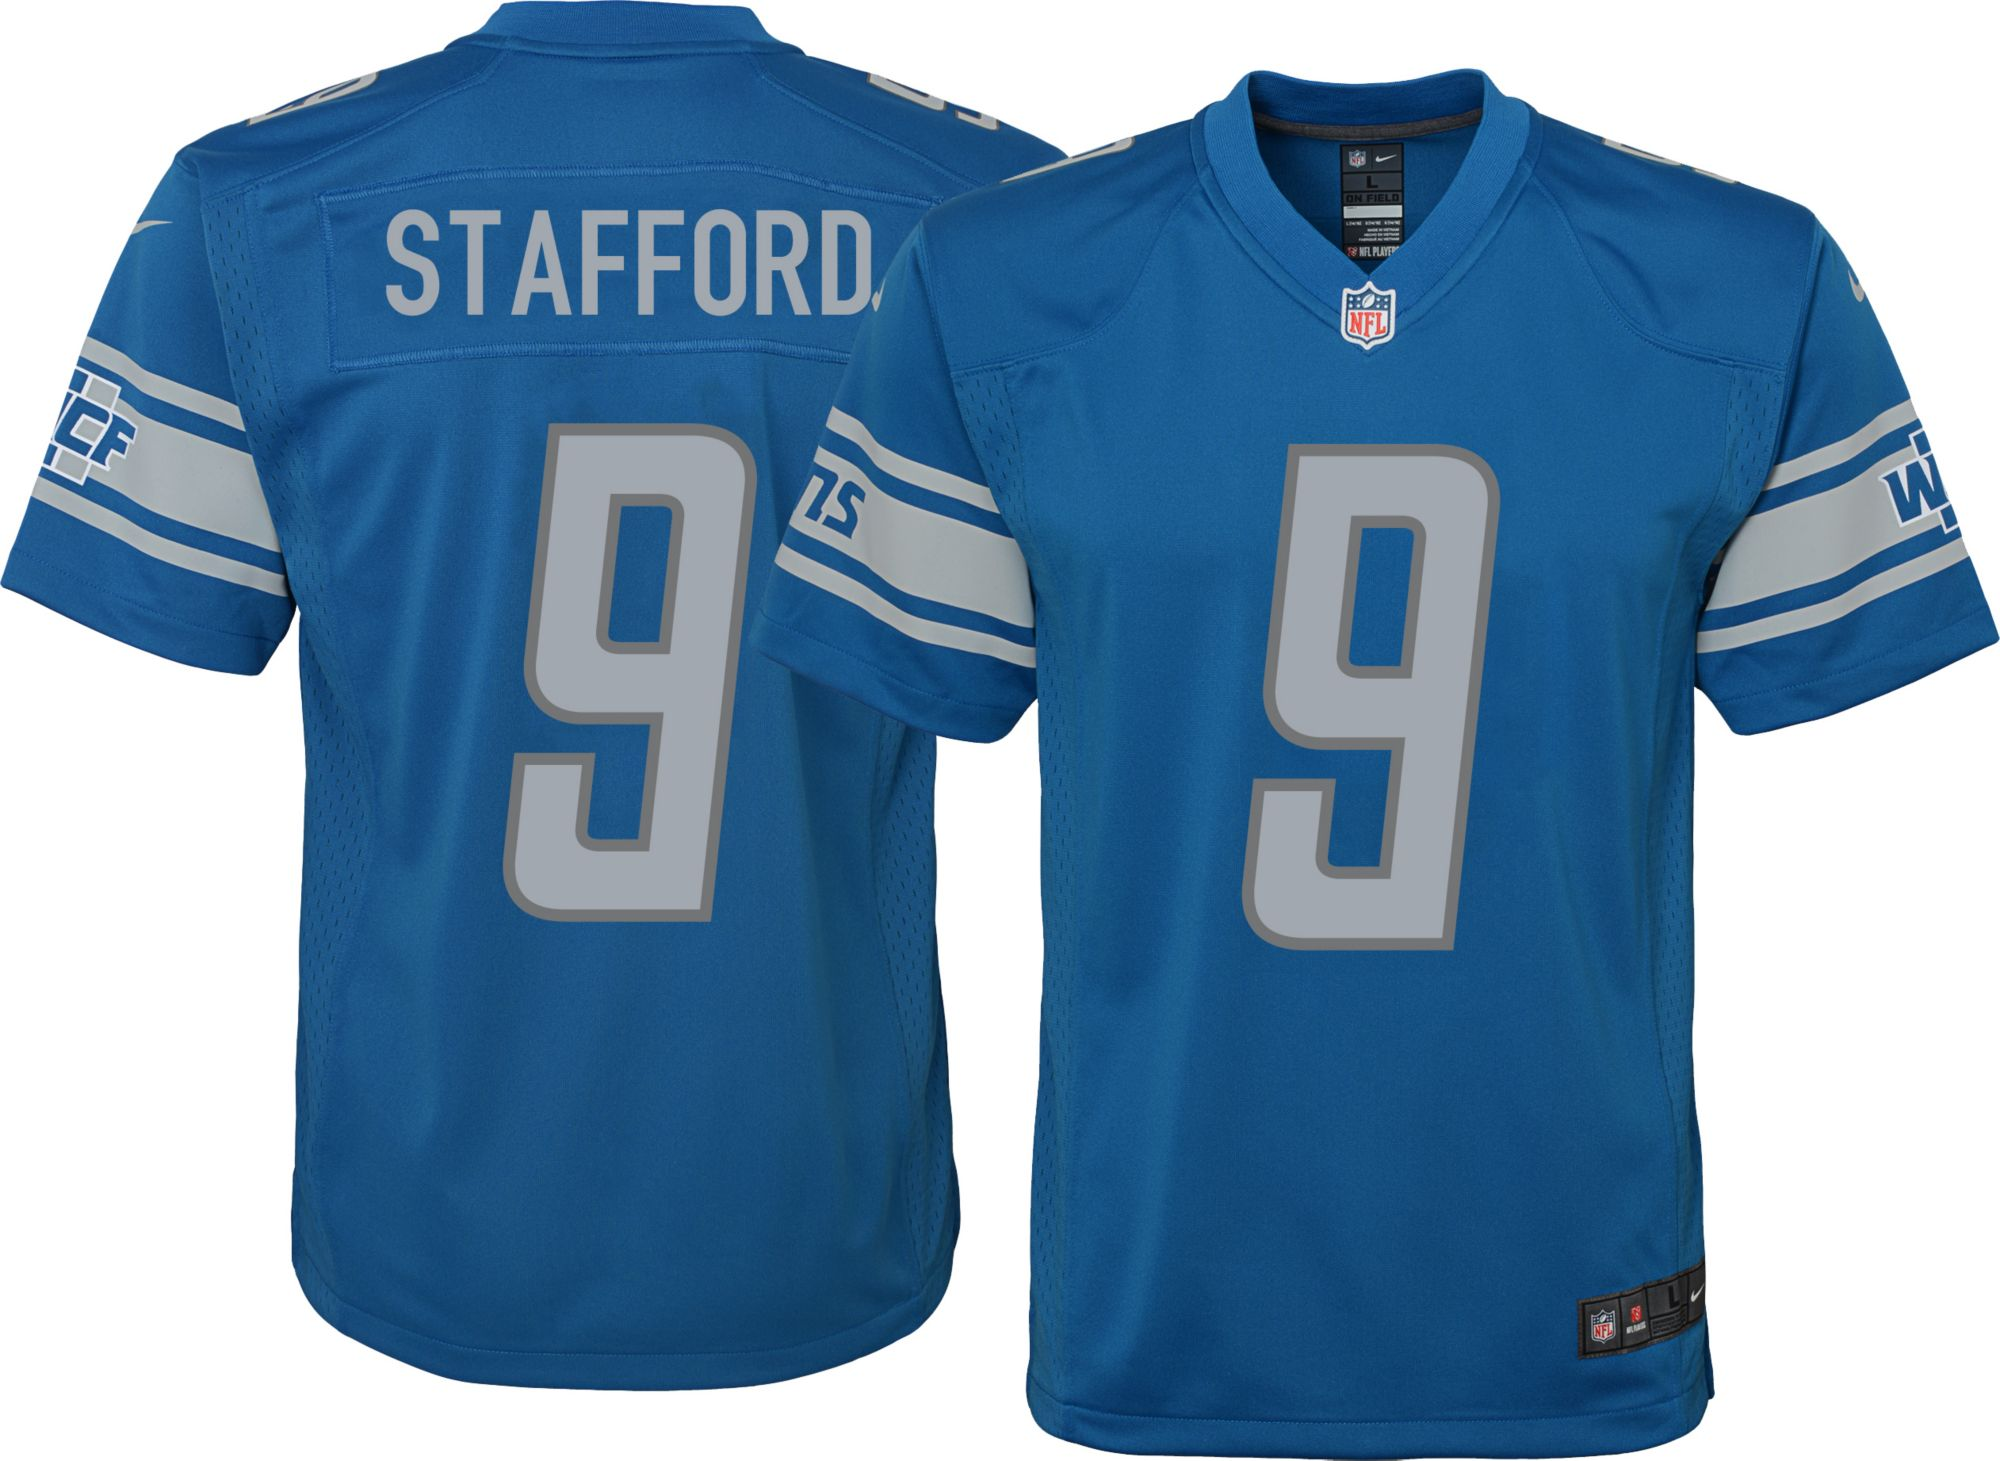 stafford youth jersey